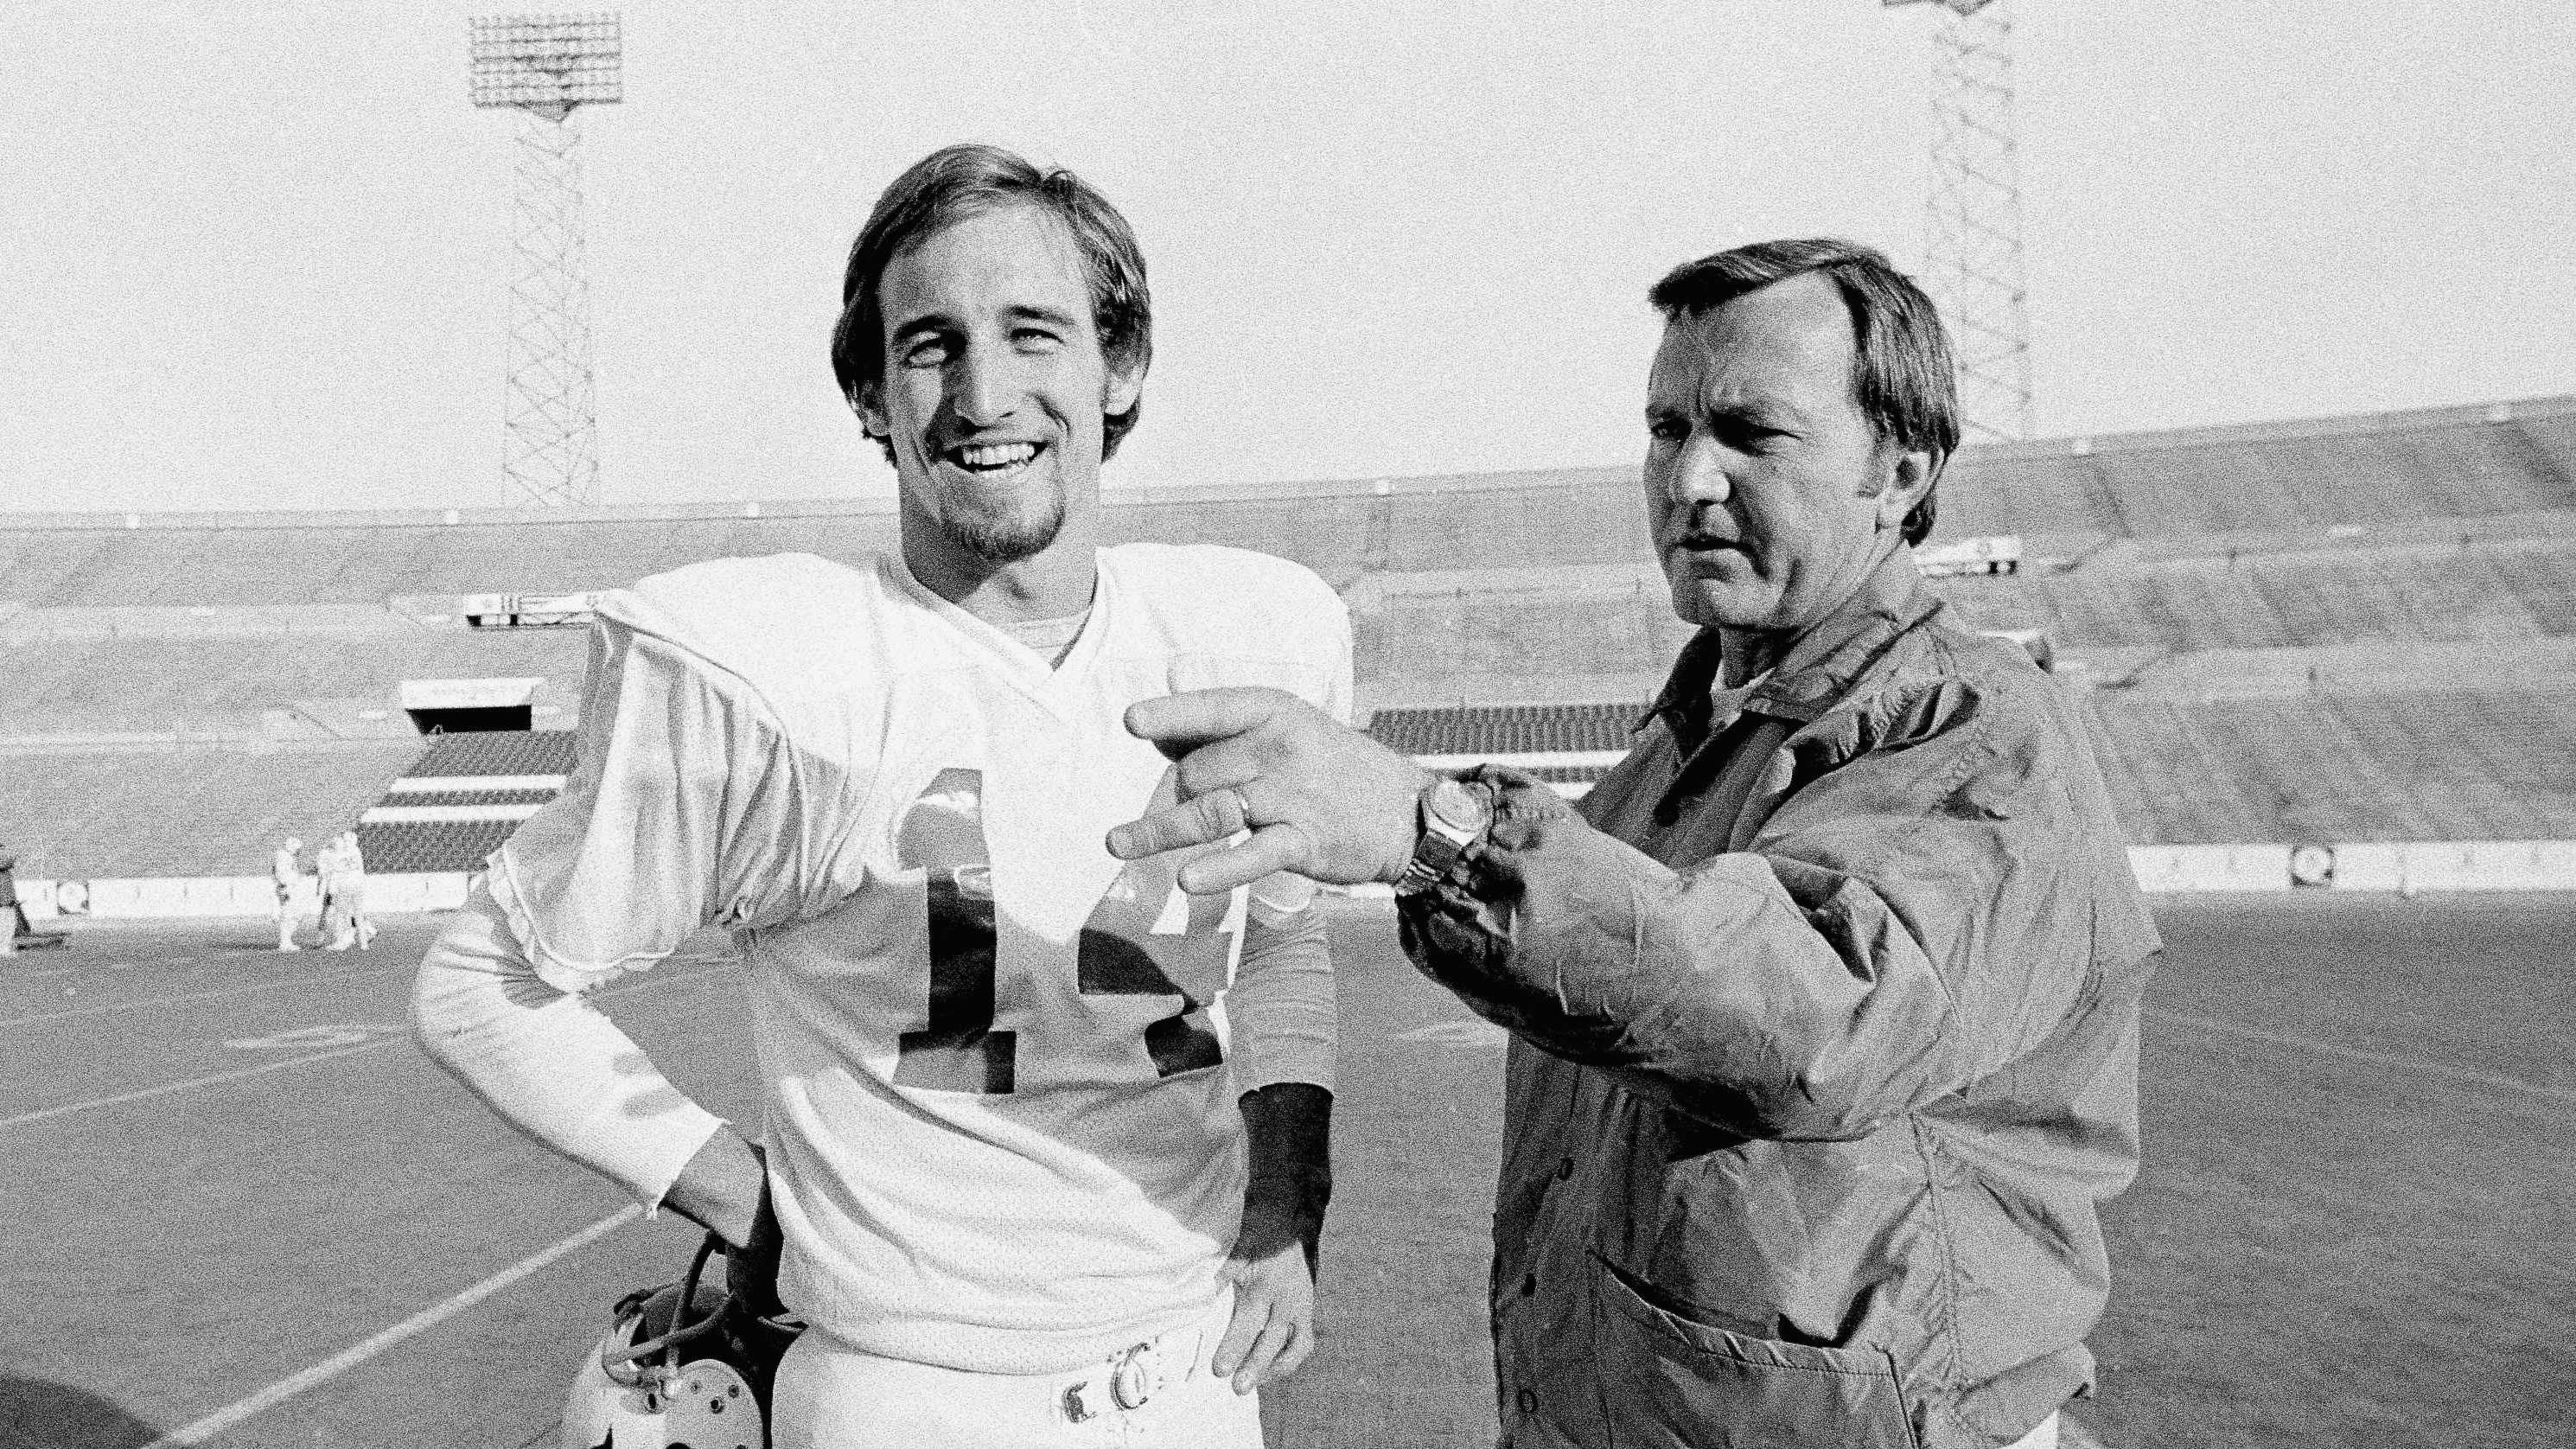 New England Patriots Coach Chuck Fairbanks, right, makes a point as he discusses play with quarterback Steve Grogan, during a workout on Dec. 15, 1976 at Schaefer Stadium in Foxboro as they prepared for playoff game with Oakland Raiders.